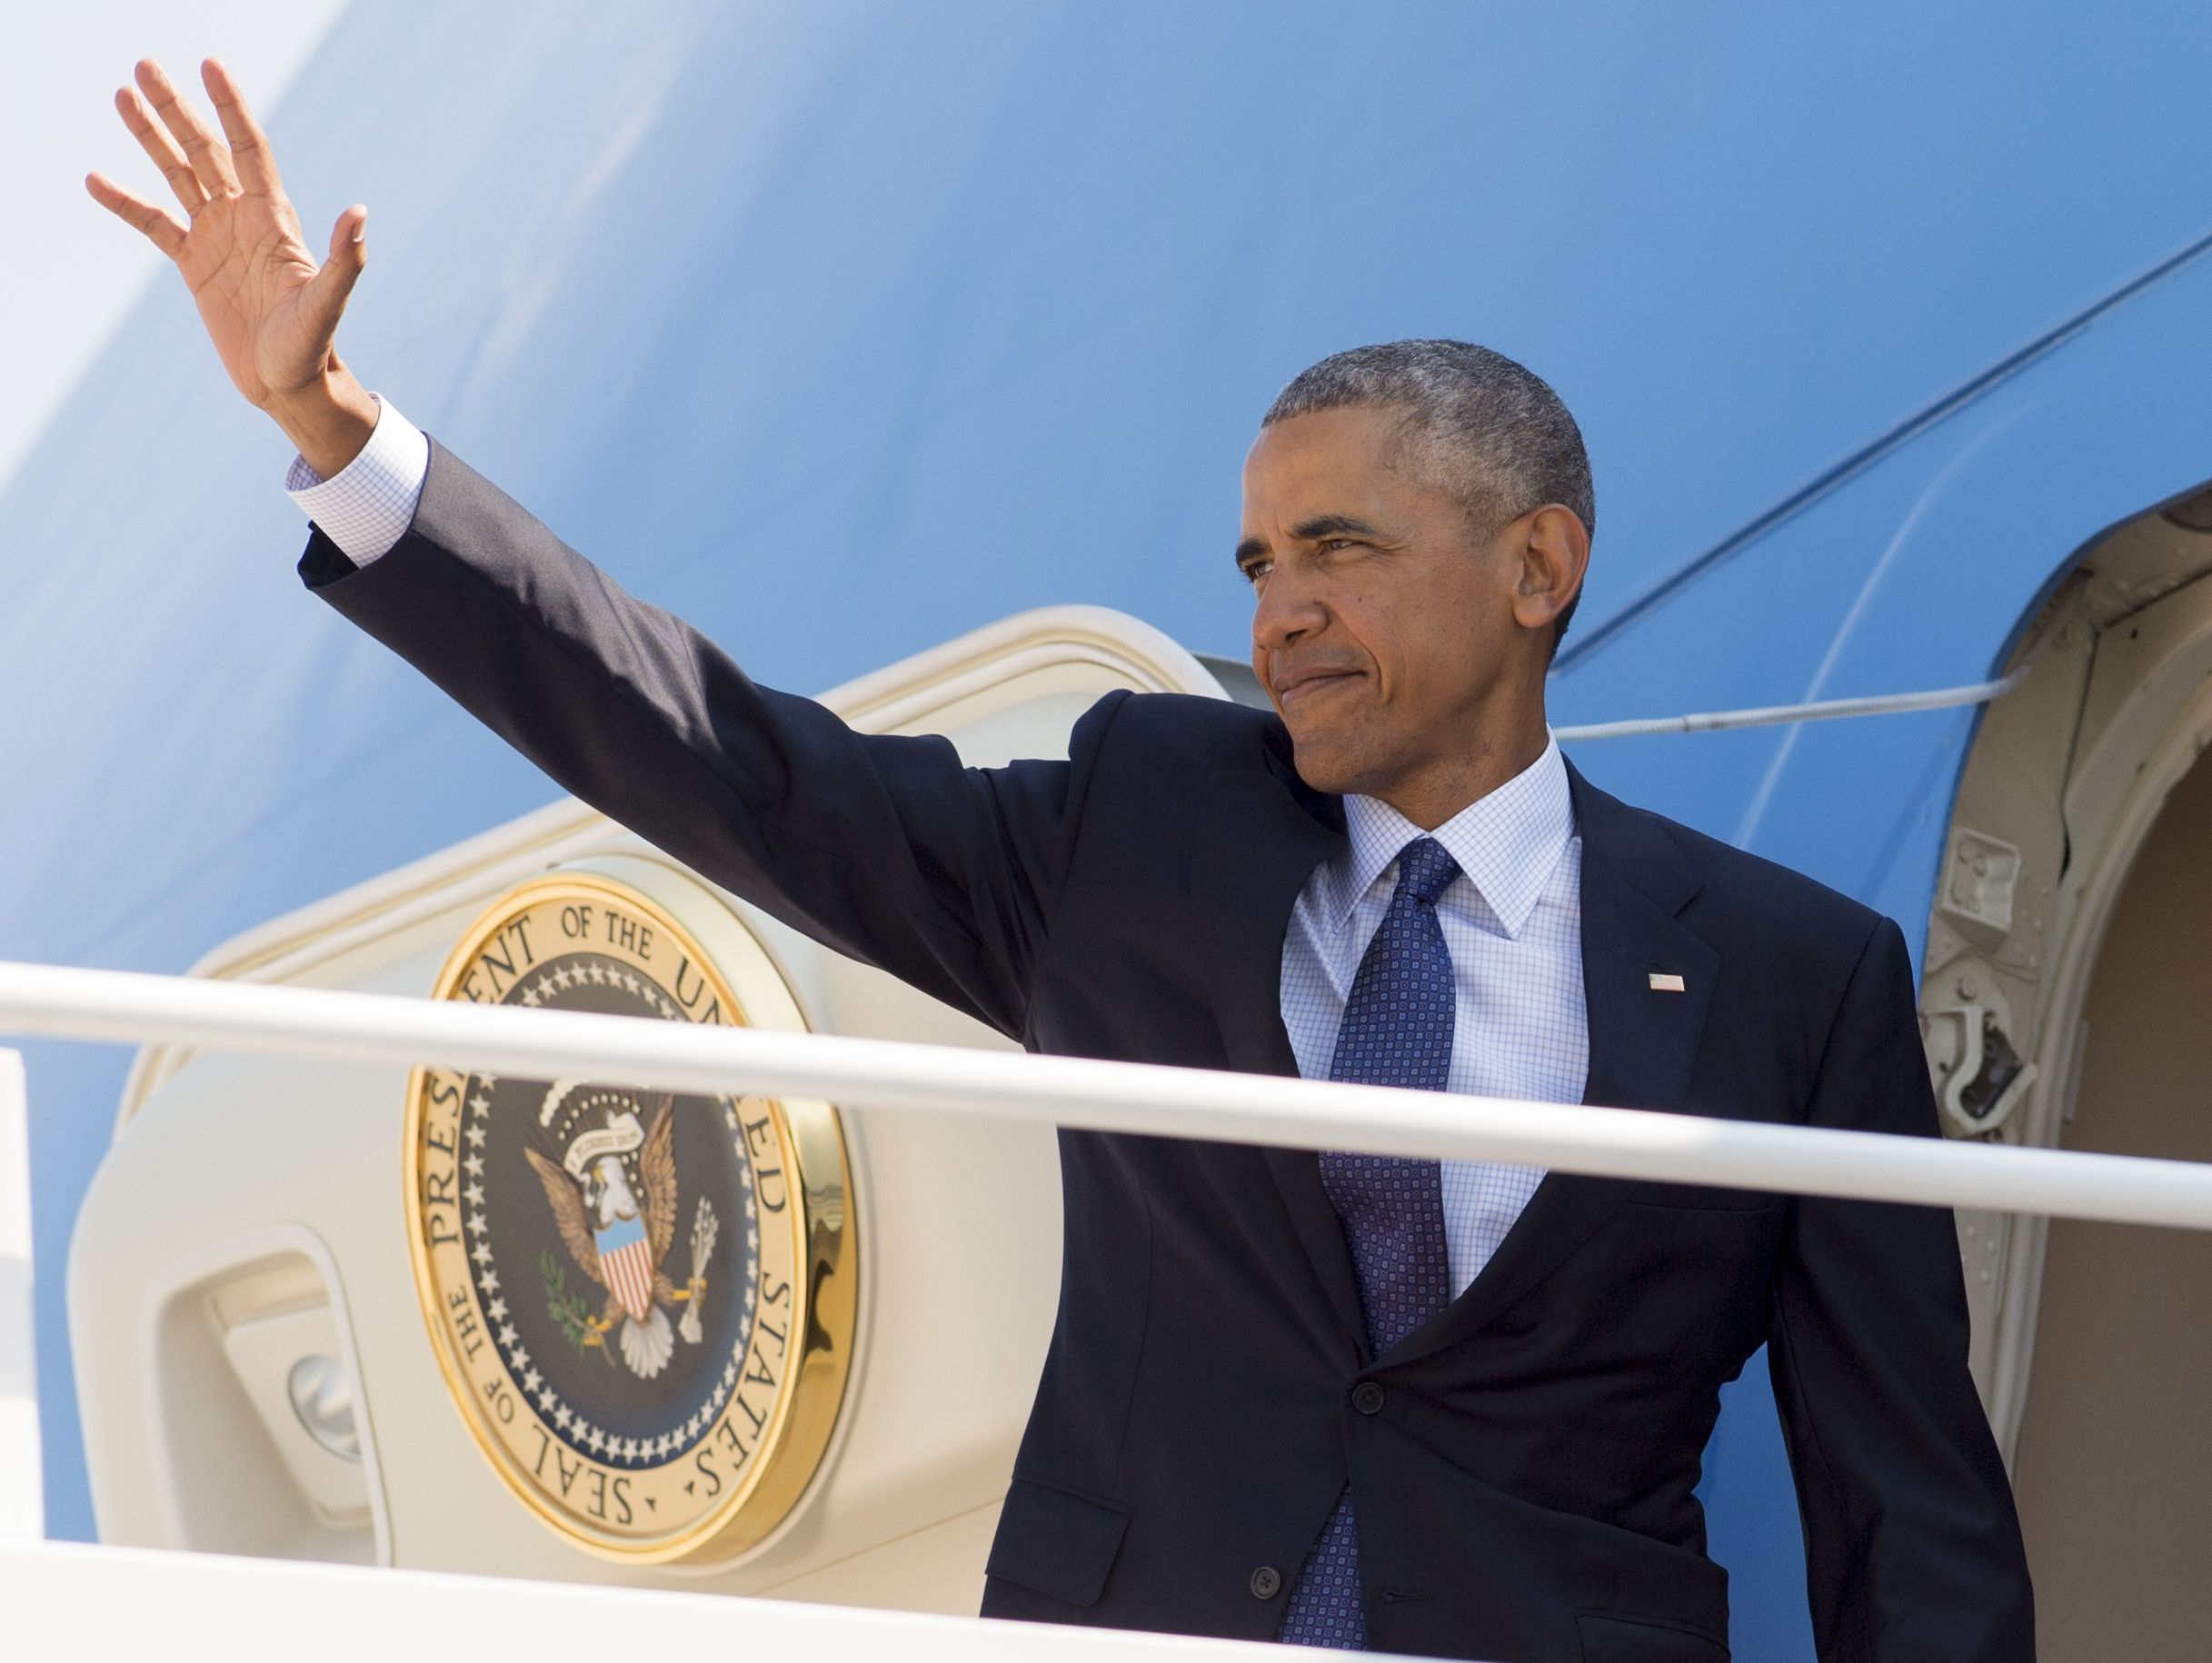 President Obama waves from Air Force One prior to departing from Andrews Air Force Base in Maryland, August 31, 2016, as he travels on a 9-day trip to Nevada, Hawaii, Midway Island, China and Laos.